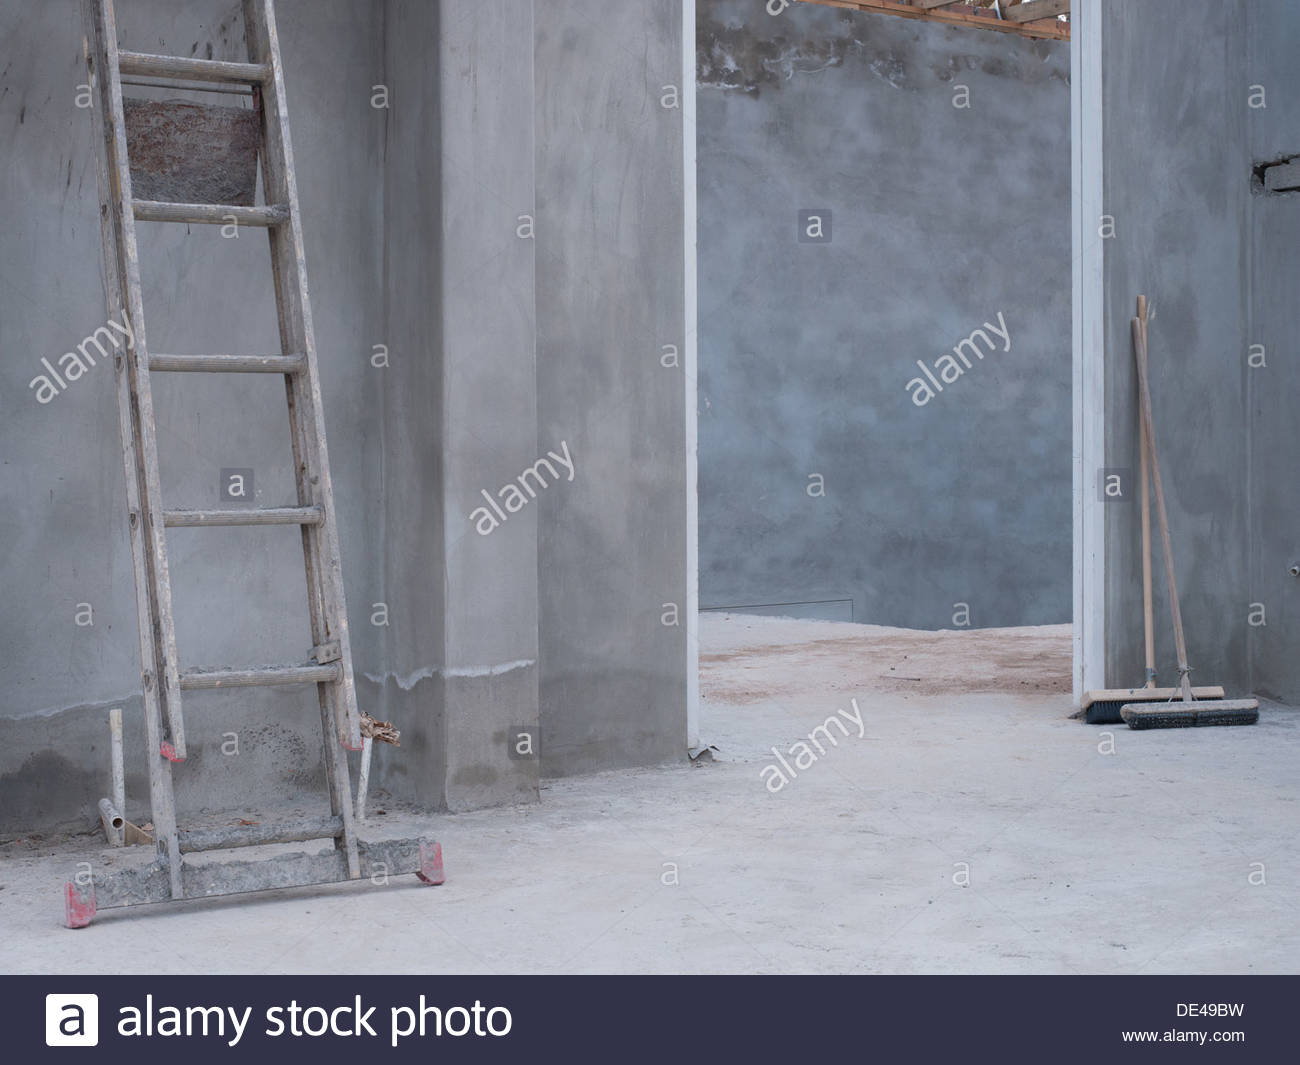 Maison en construction Photo Stock